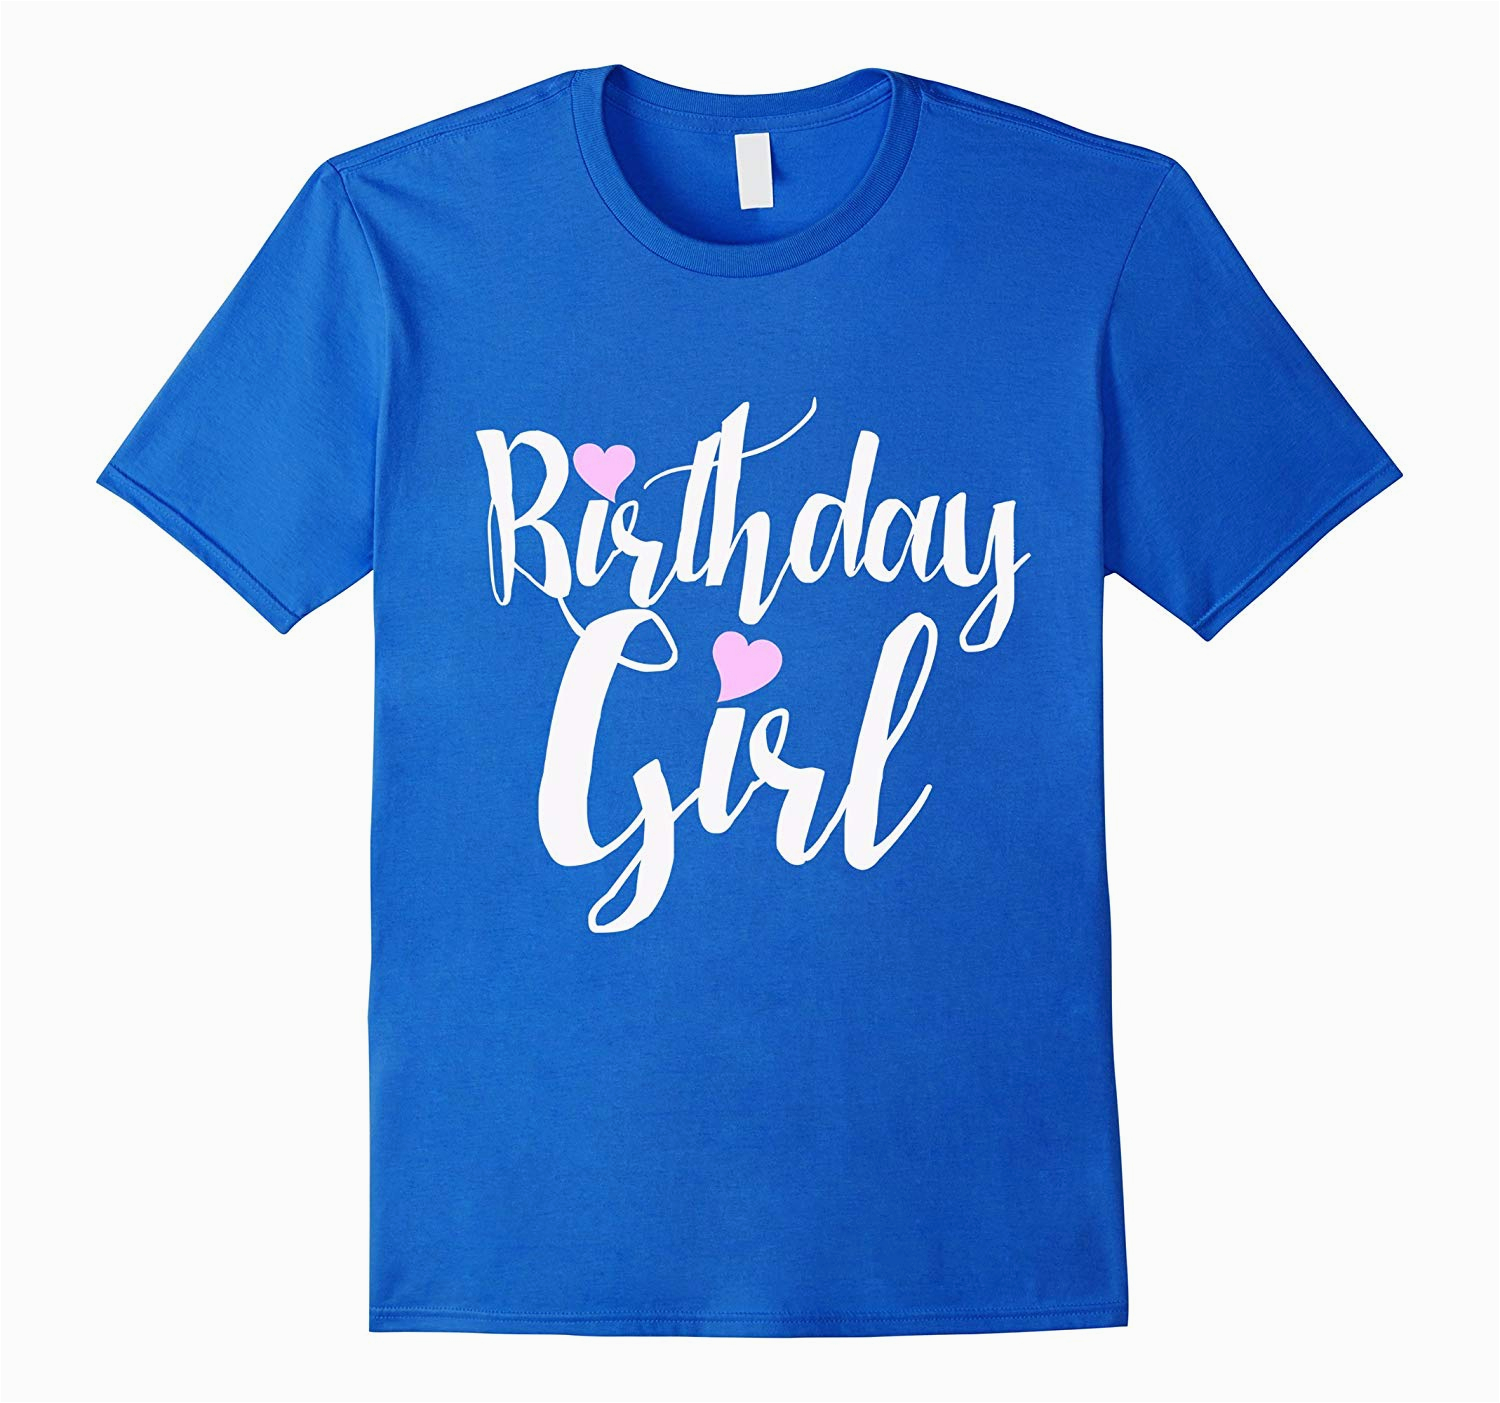 birthday girl shirt cute girly girl t shirt for a birthday art